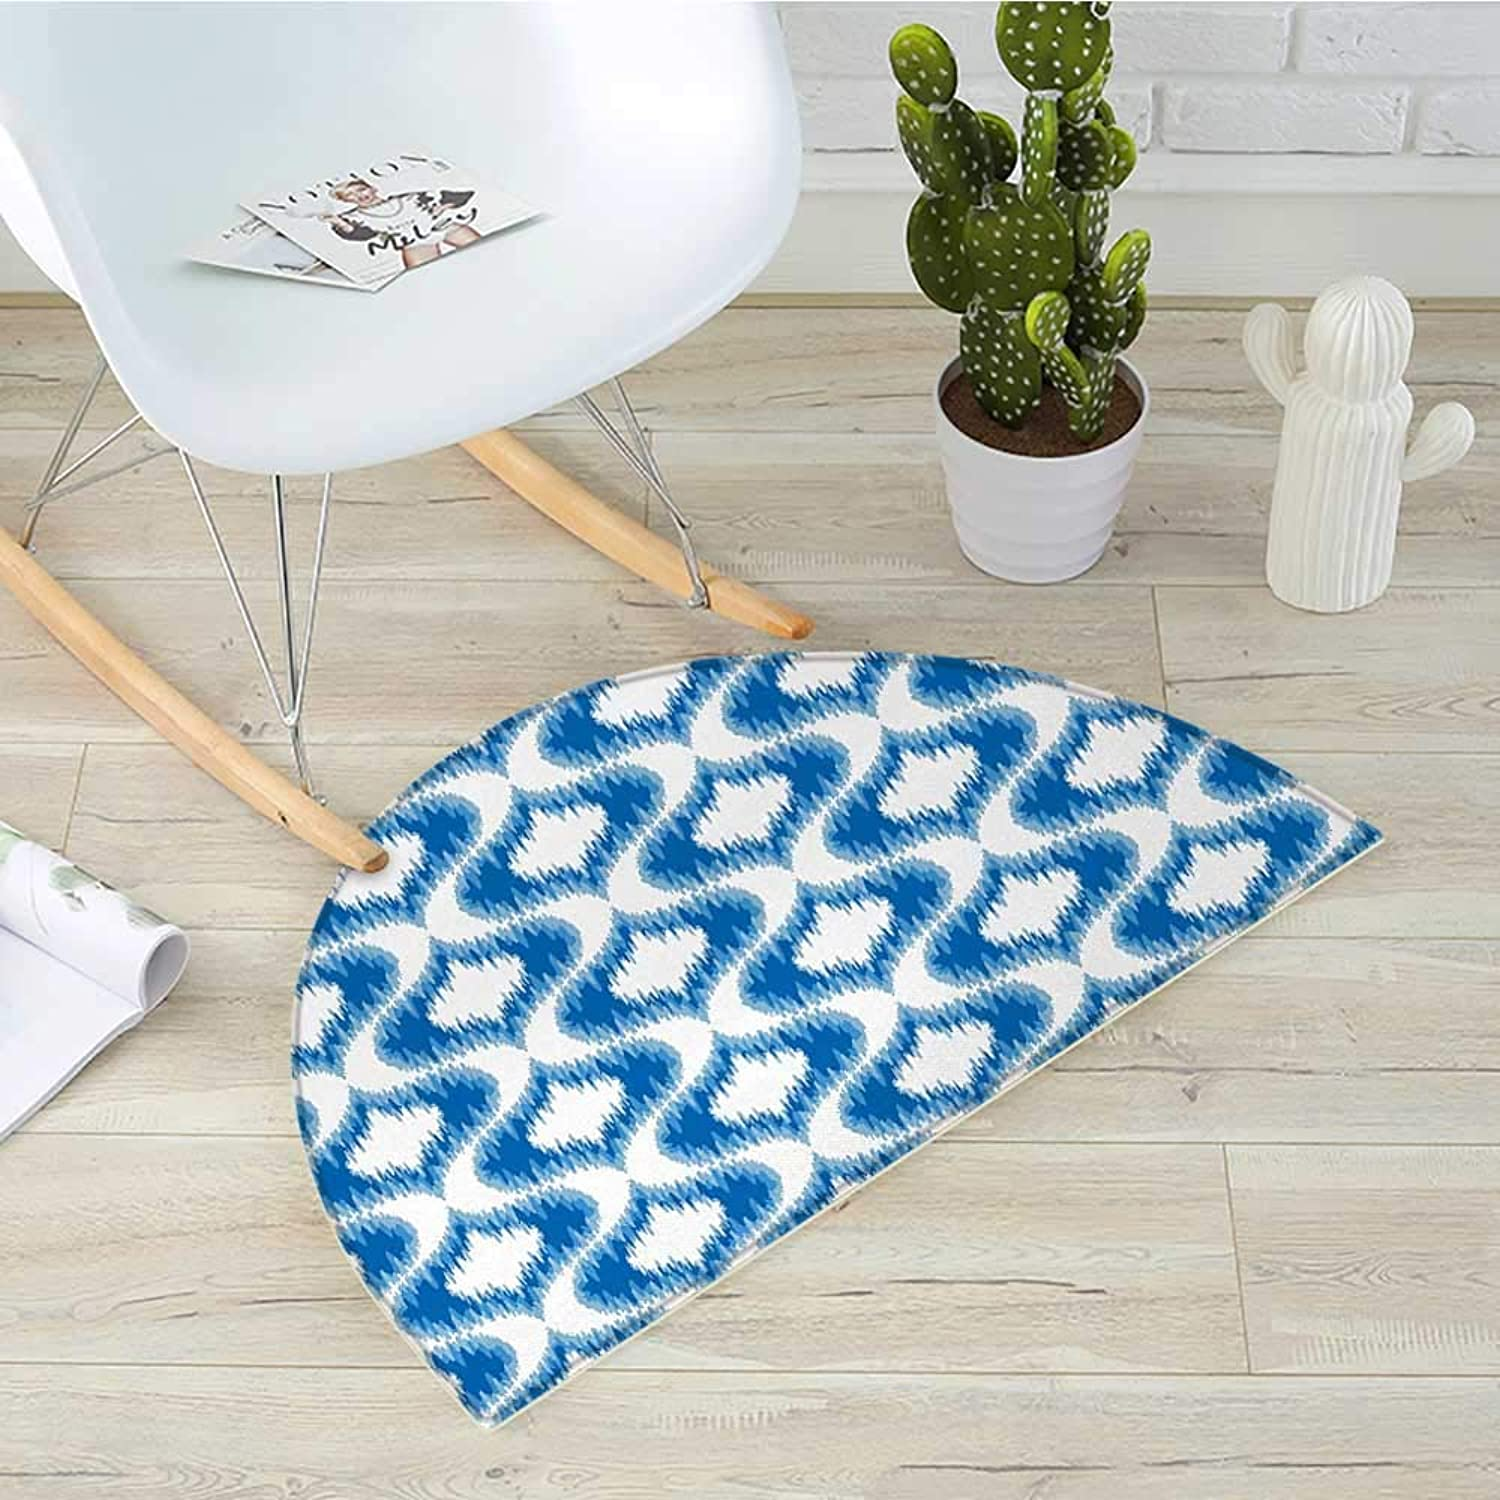 Ikat Semicircle Doormat Ikat Damask Linked Motifs Pattern bluerry Over Finer Tied Warp and Weft Yarns Design Halfmoon doormats H 35.4  xD 53.1  bluee White